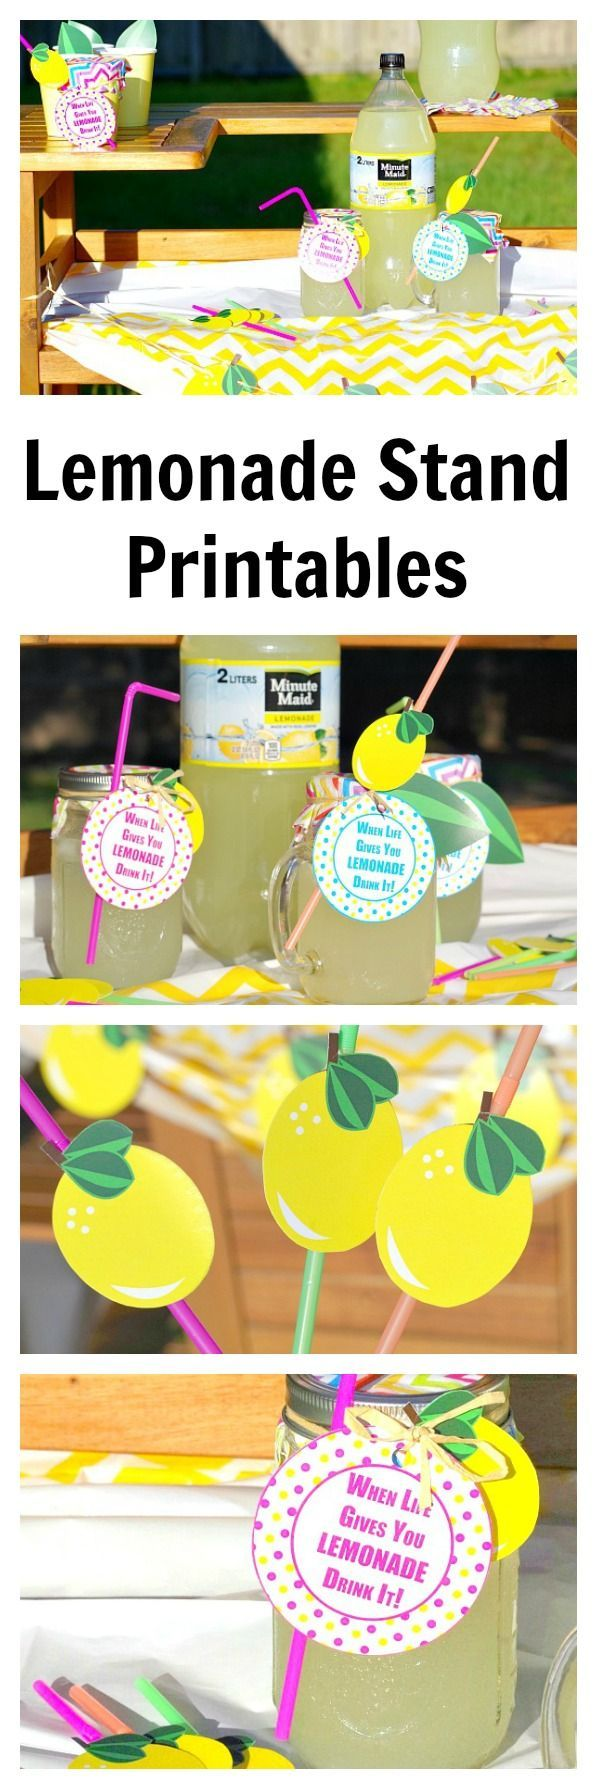 Lemonade Stand Printables (With images) Lemonade stand